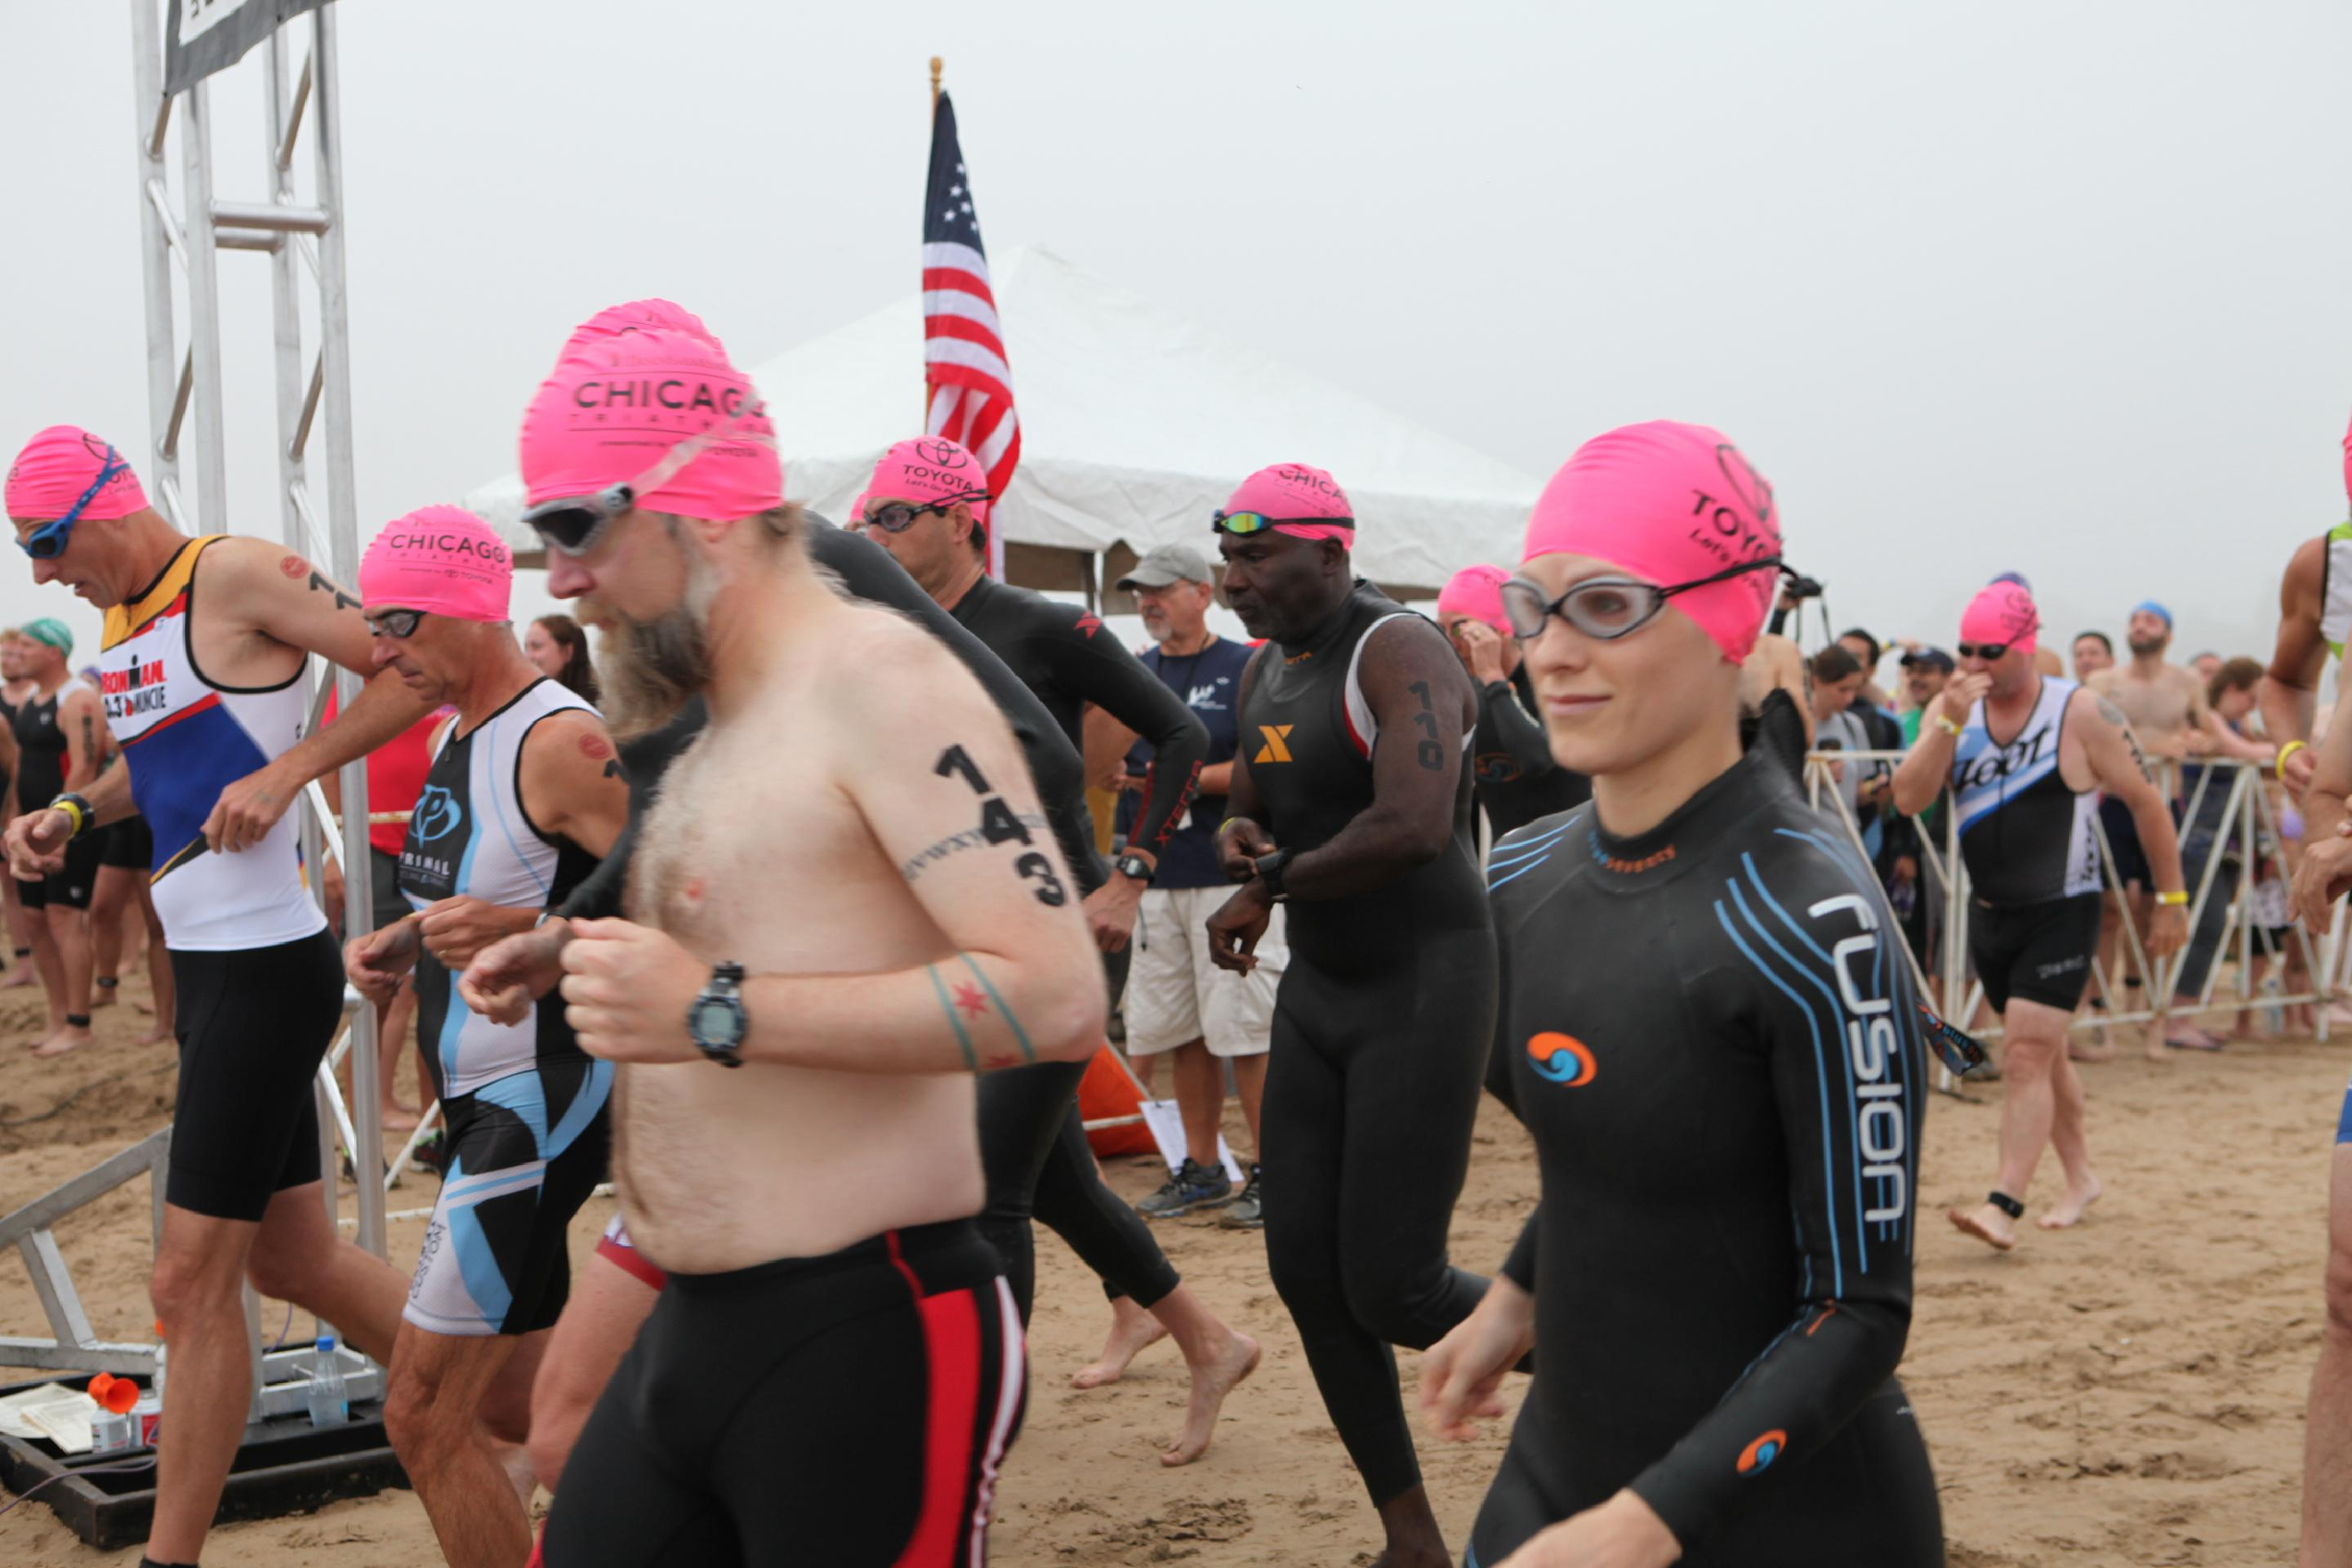 Chicago Triathlon 2014 Supersprint Swim